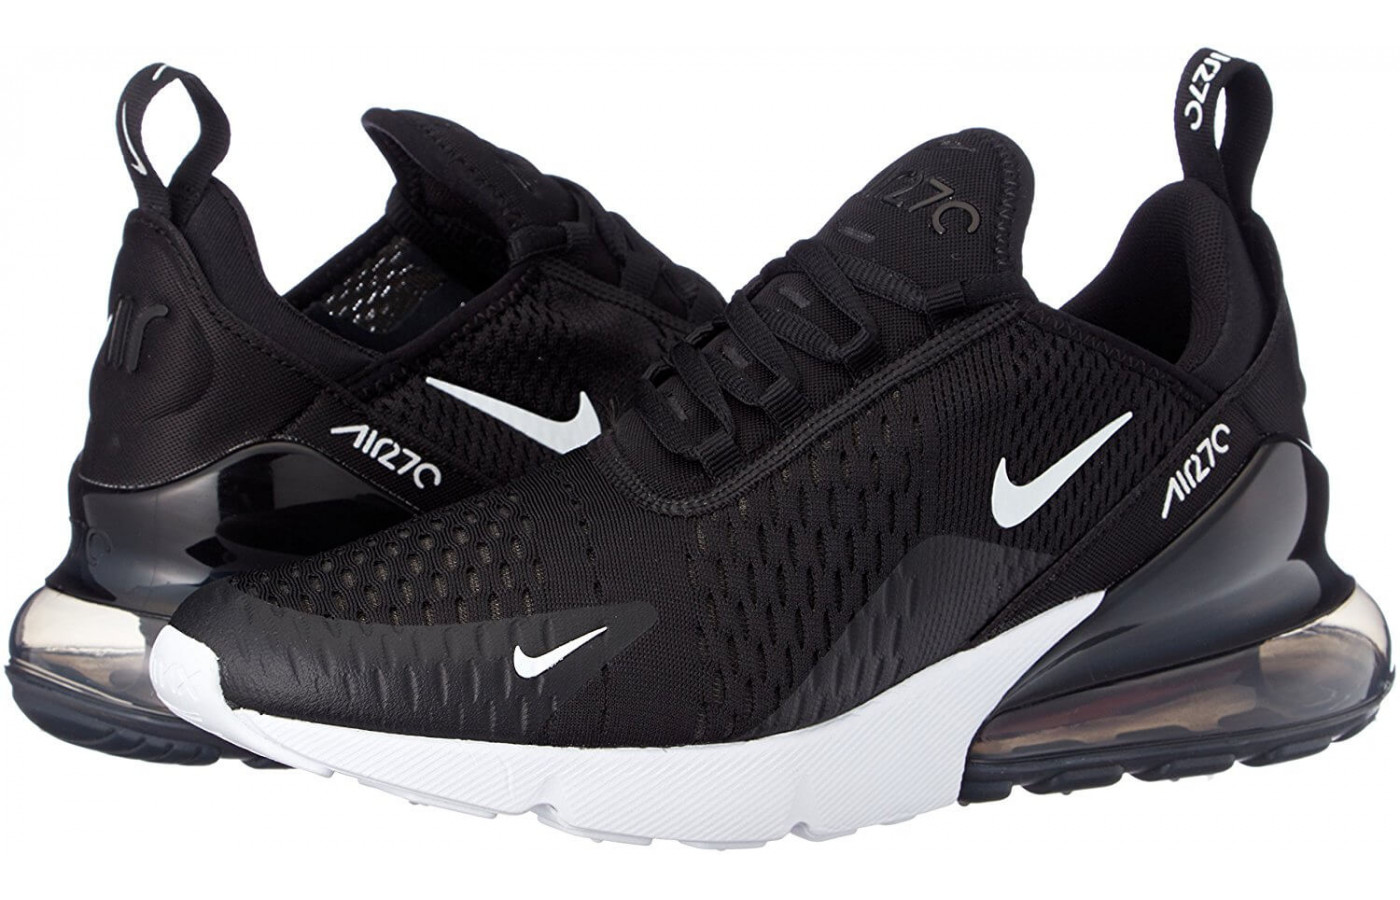 e28f16c64fbd Nike Air Max 270 Reviewed - To Buy or Not in Apr 2019